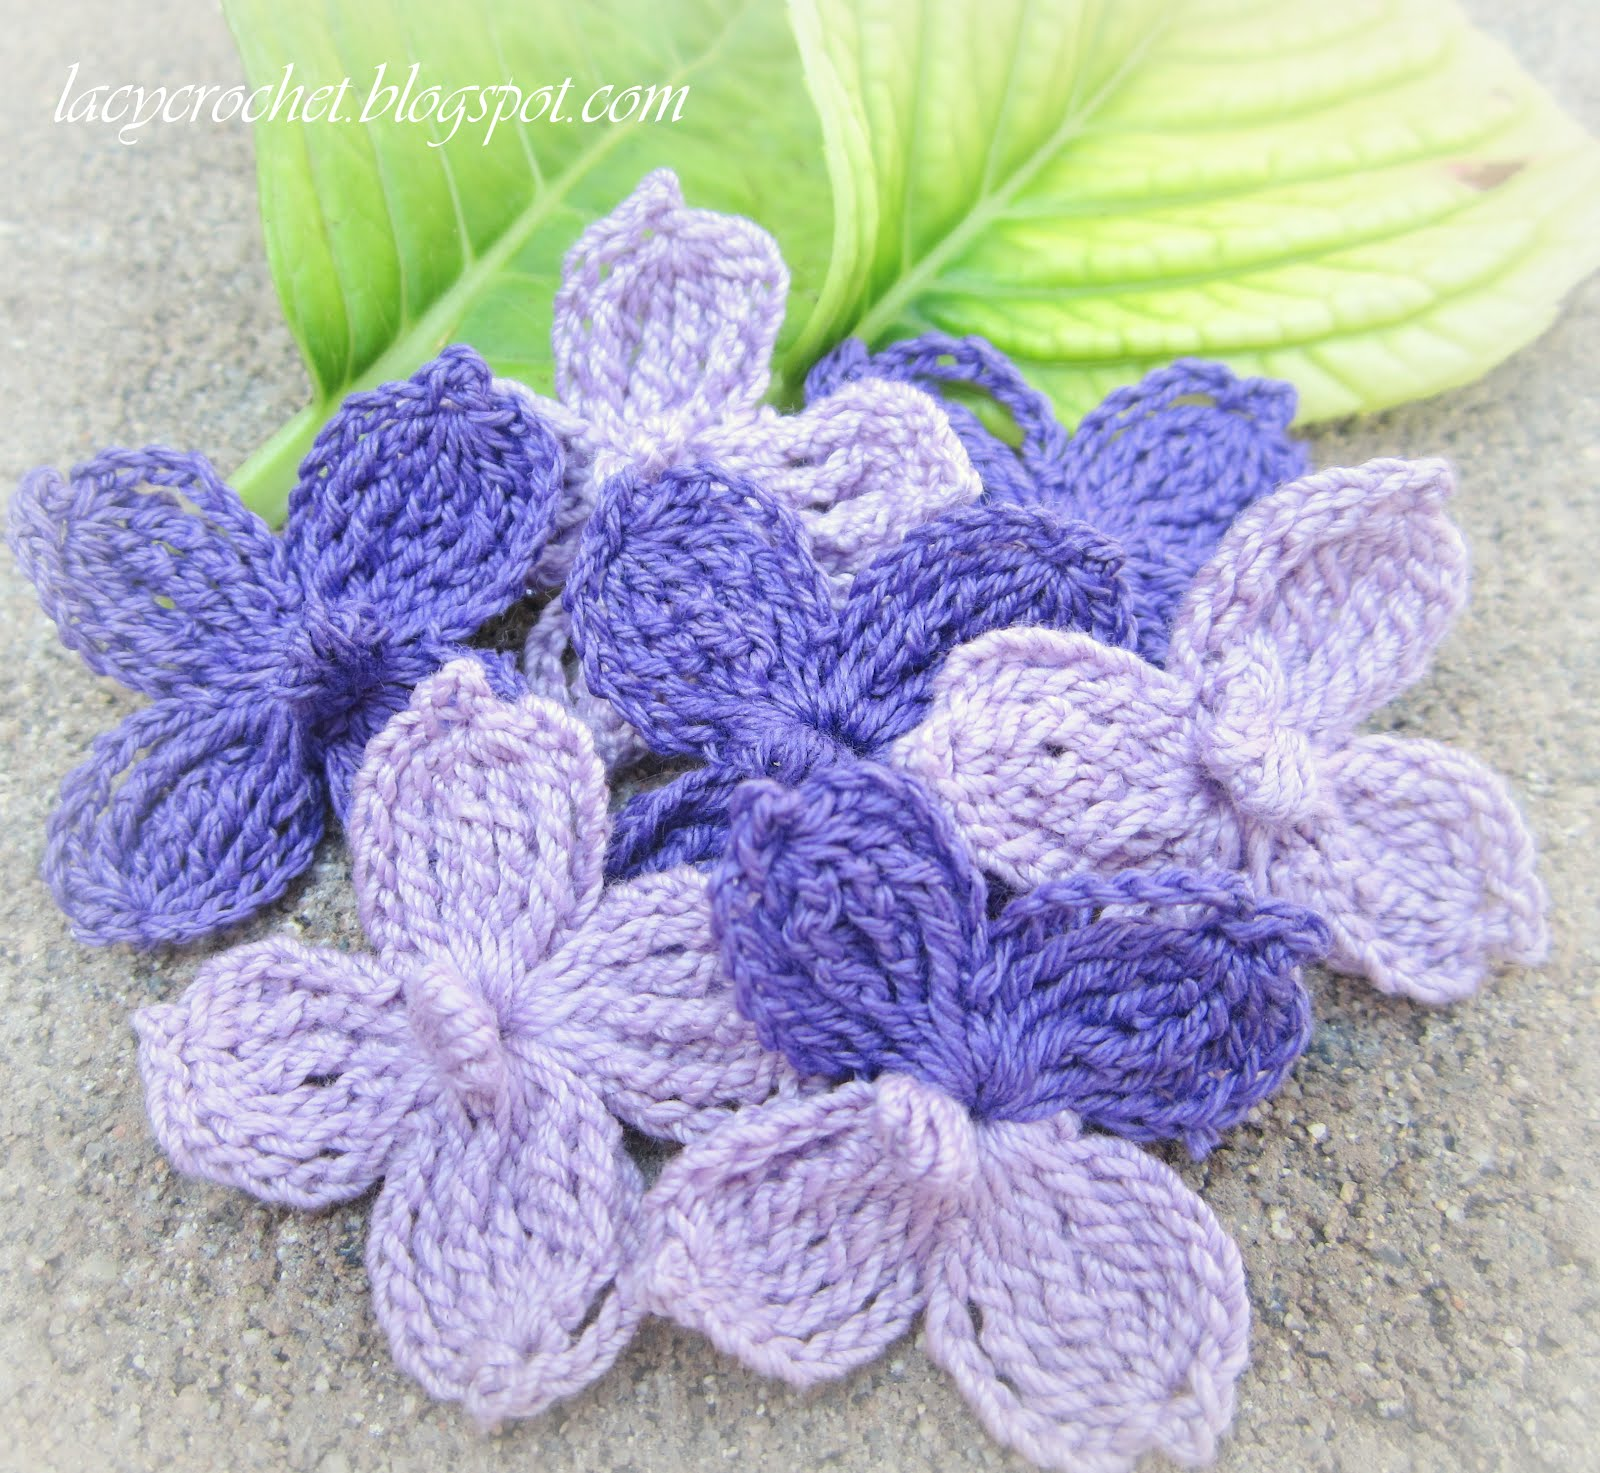 Lacy Crochet: Better Hydrangea Flowers